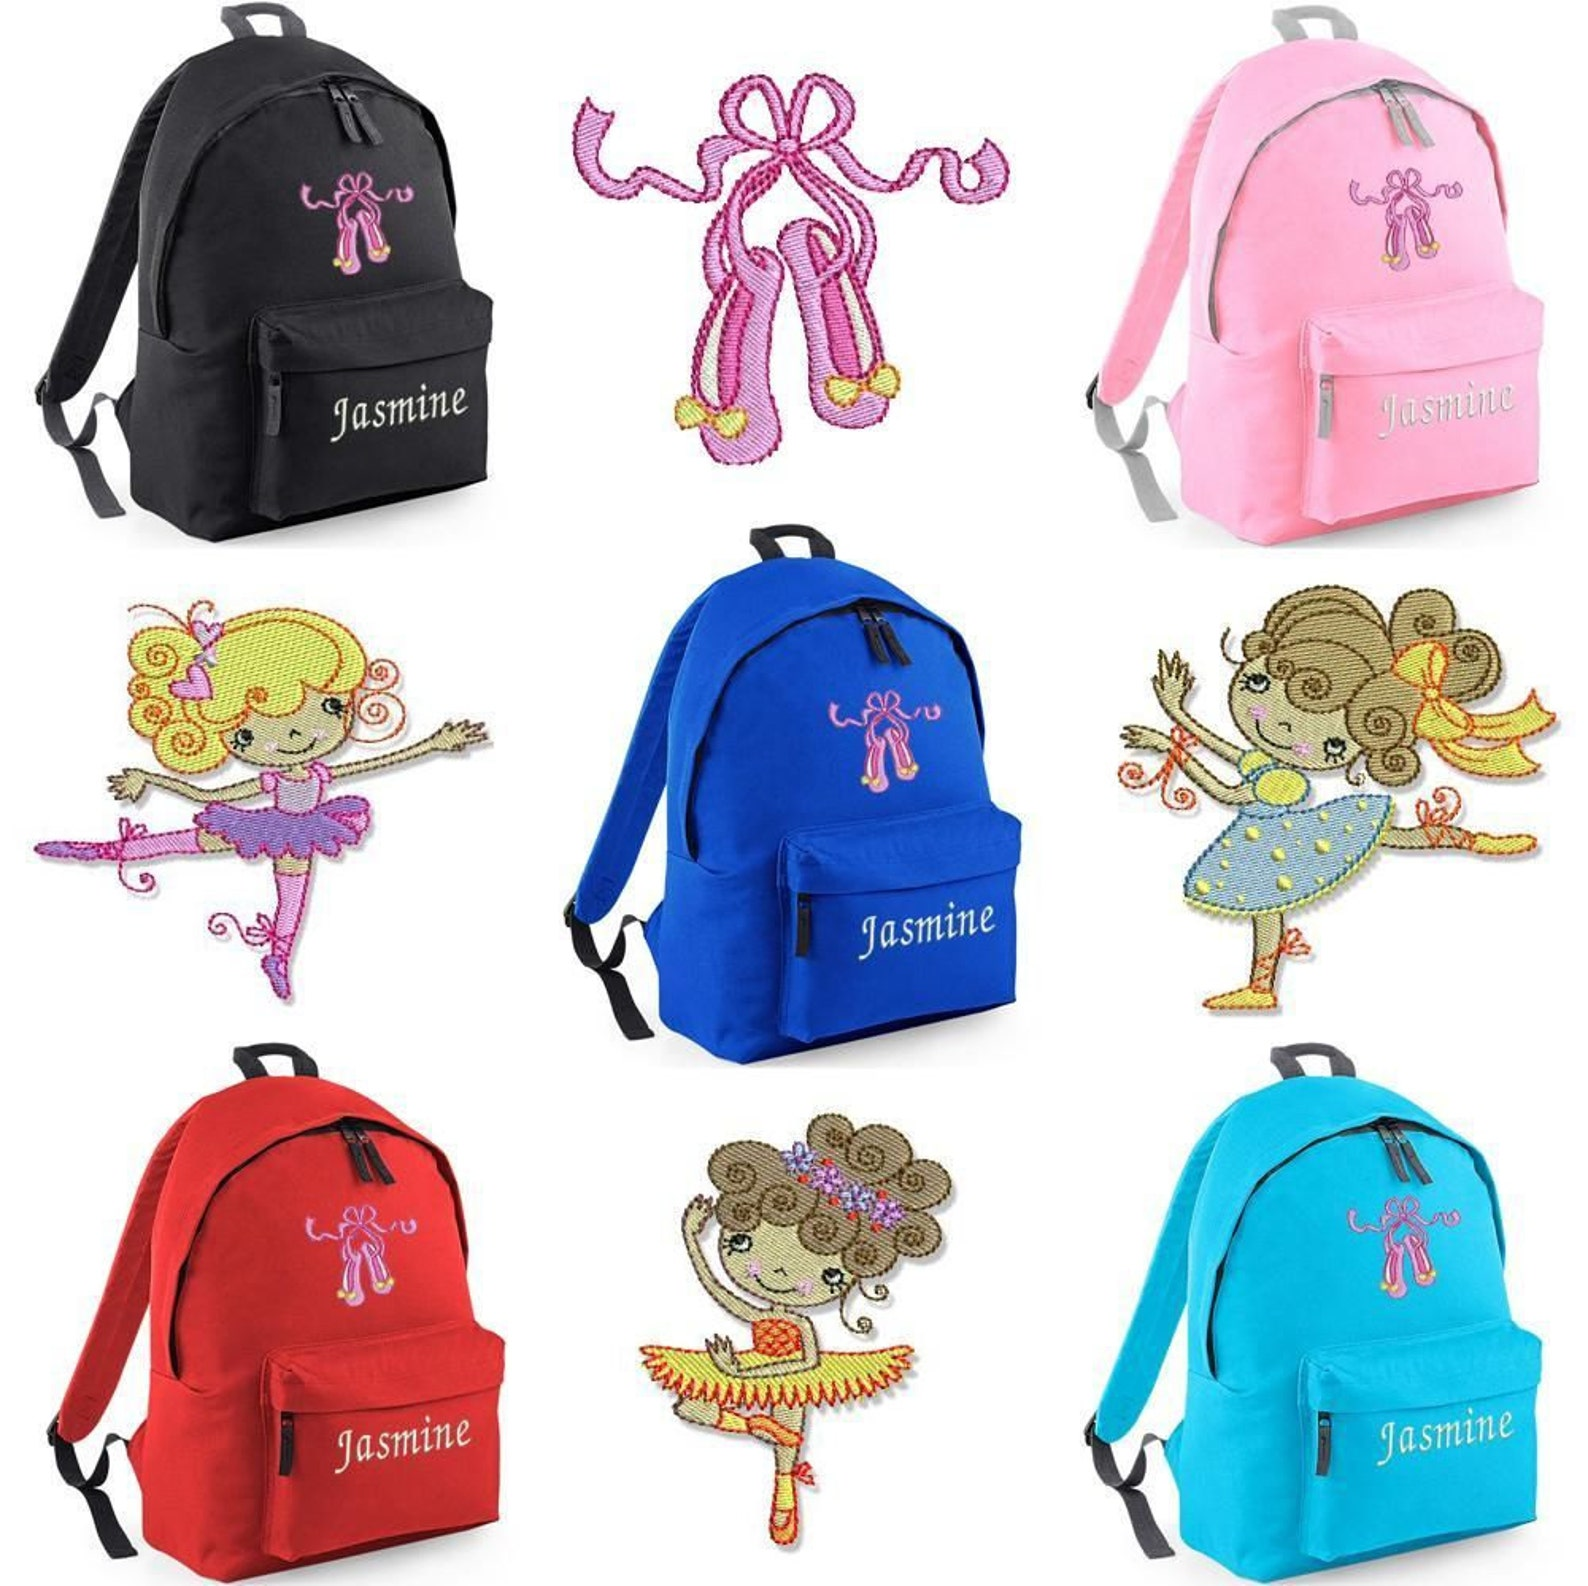 personalised embroidered junior ballet rucksack/backpack dance leotard shoe bag bc1. personalized rucksack/backpack